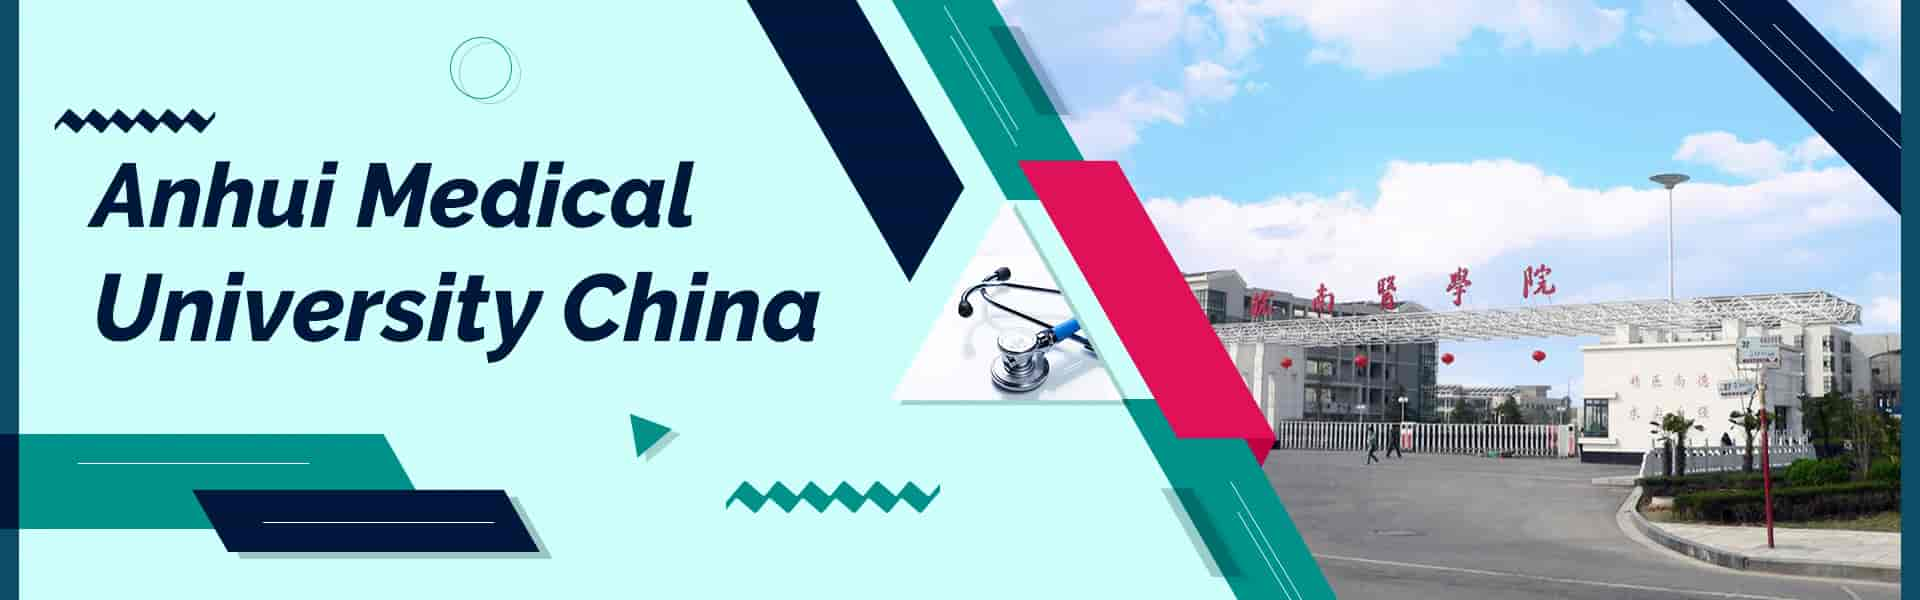 Anhui Medical University MBBS Fees 2021 for Indian Students